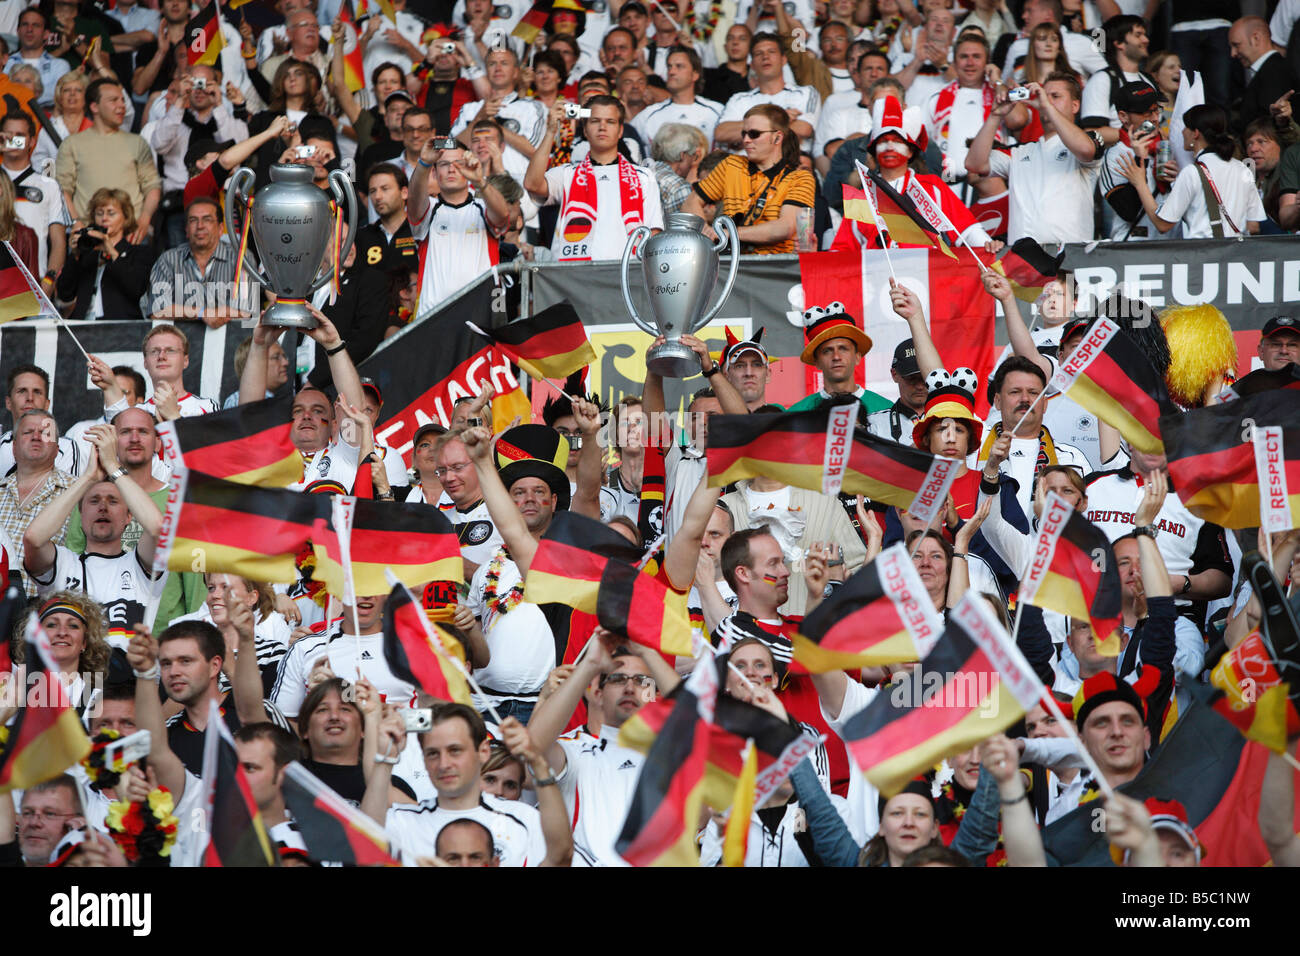 German supporters cheer their team prior to the start of a UEFA Euro 2008 group stage match against Austria. Stock Photo